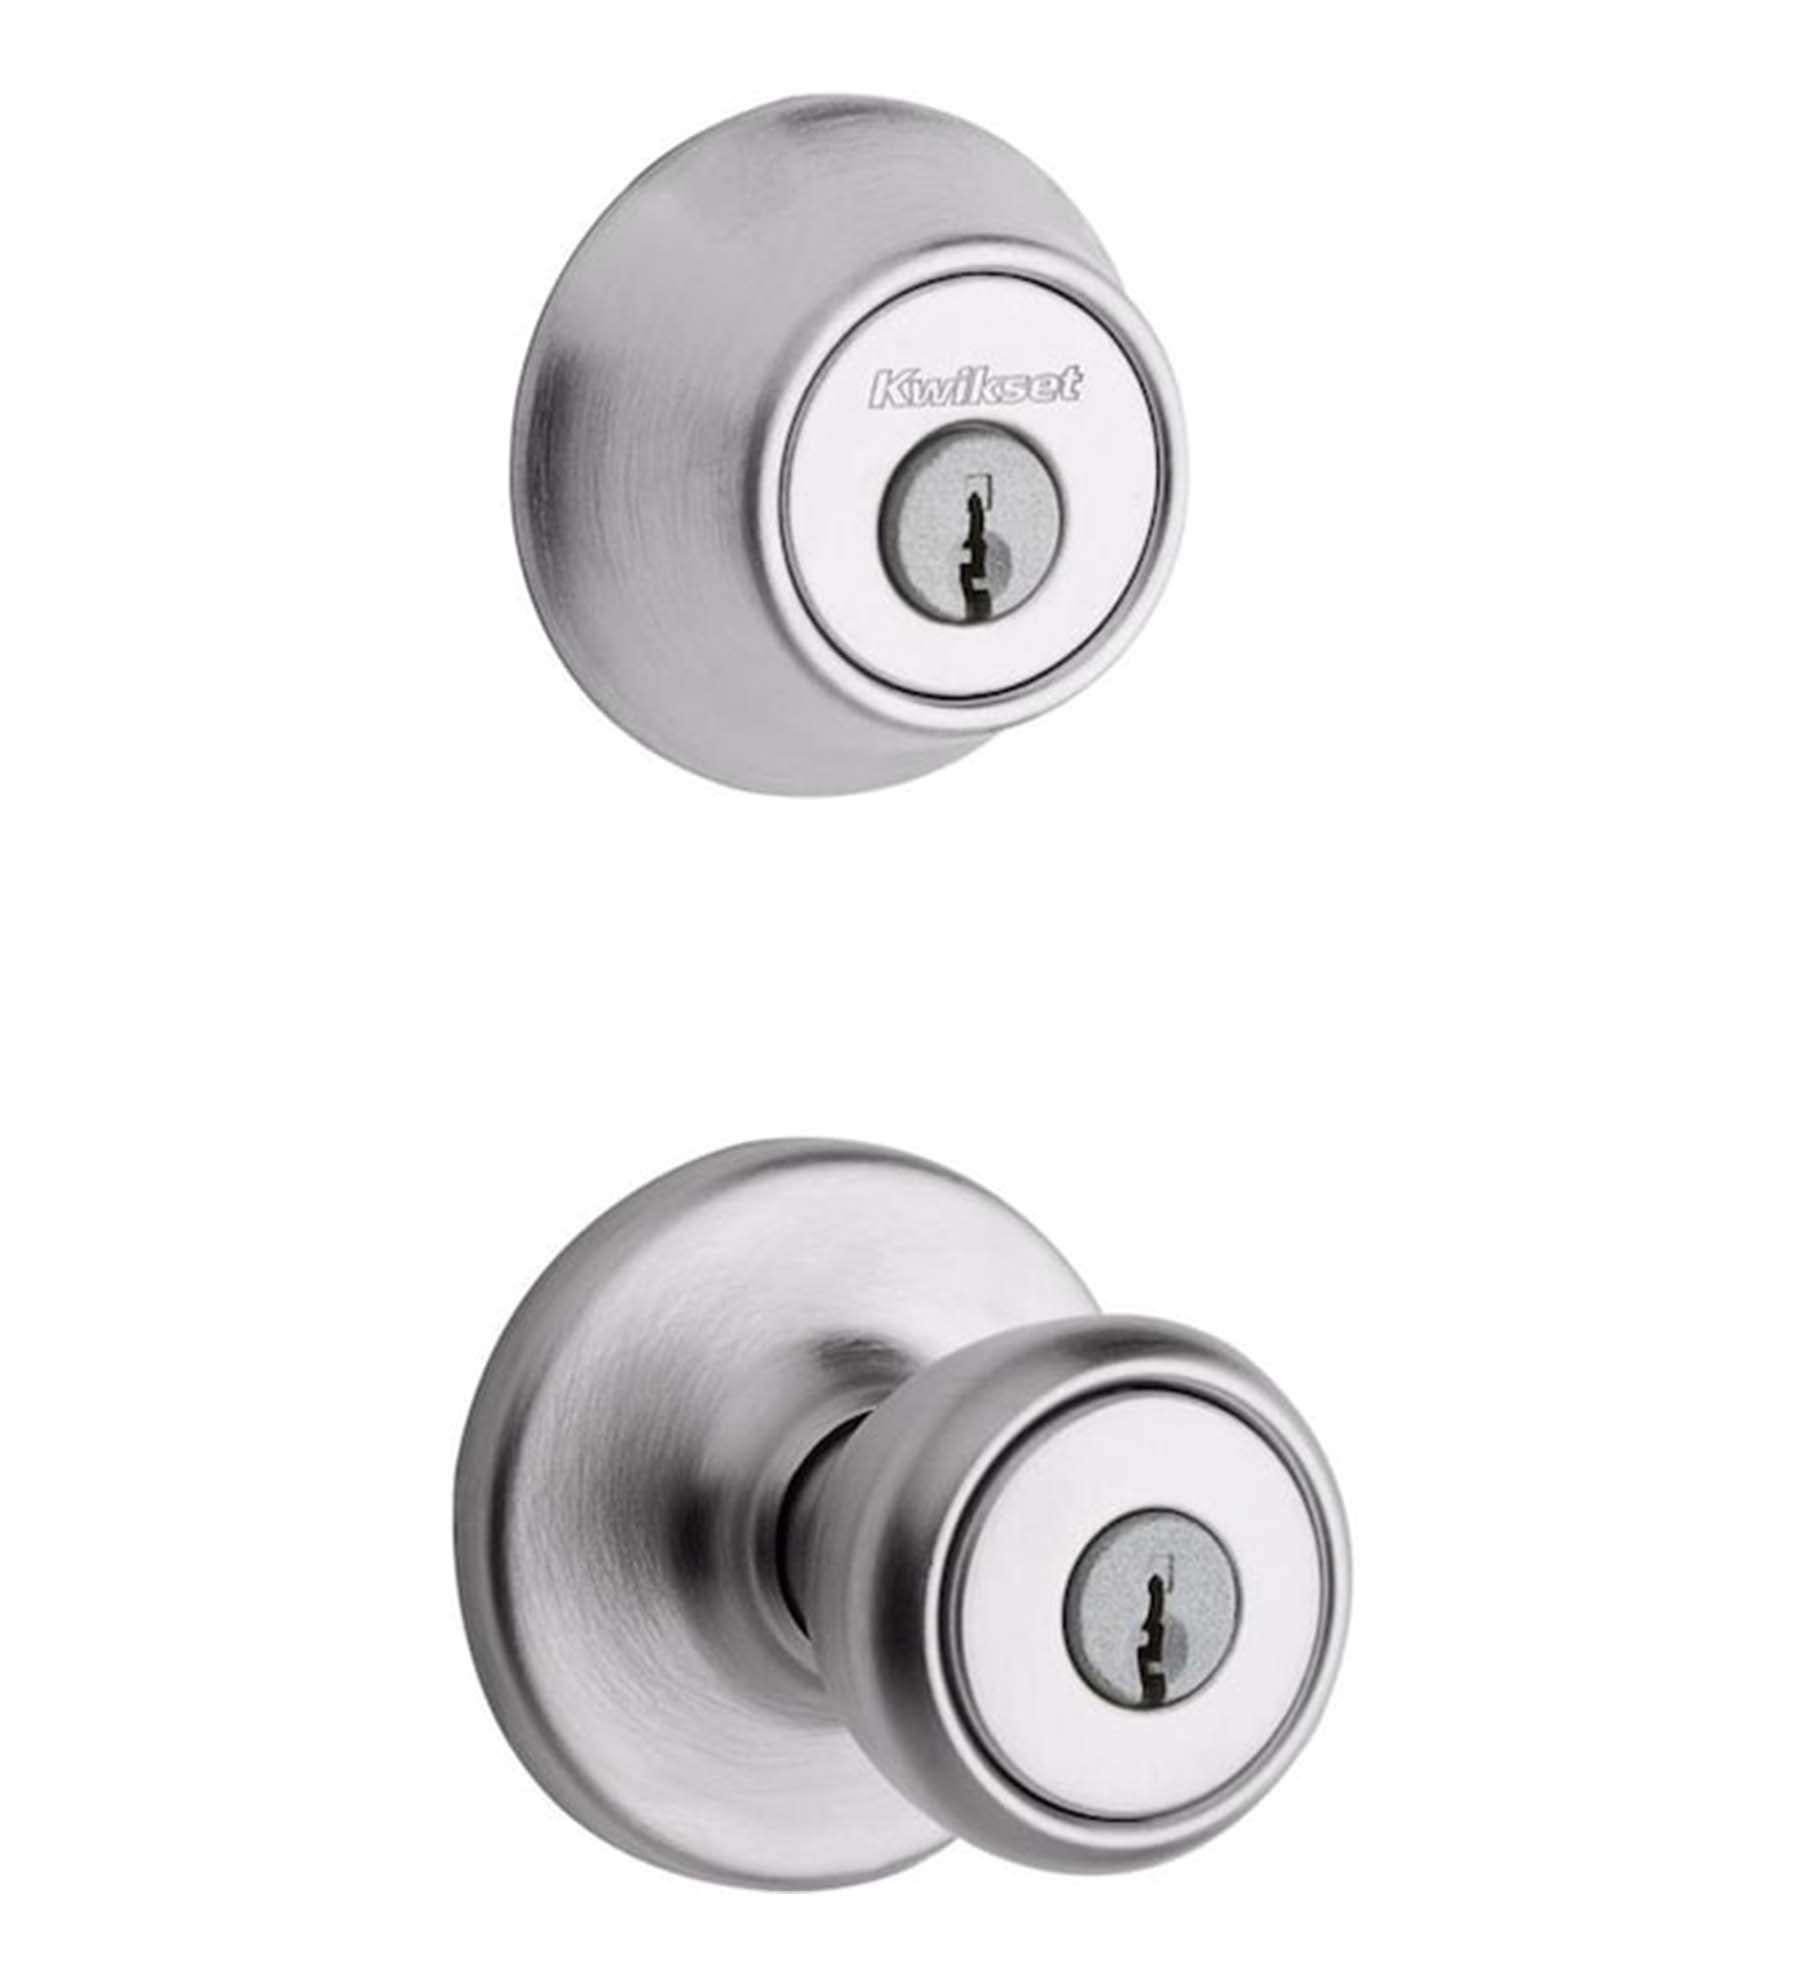 Kwikset Tylo Double-cylinder Deadbolt Keyed Entry Door Knob